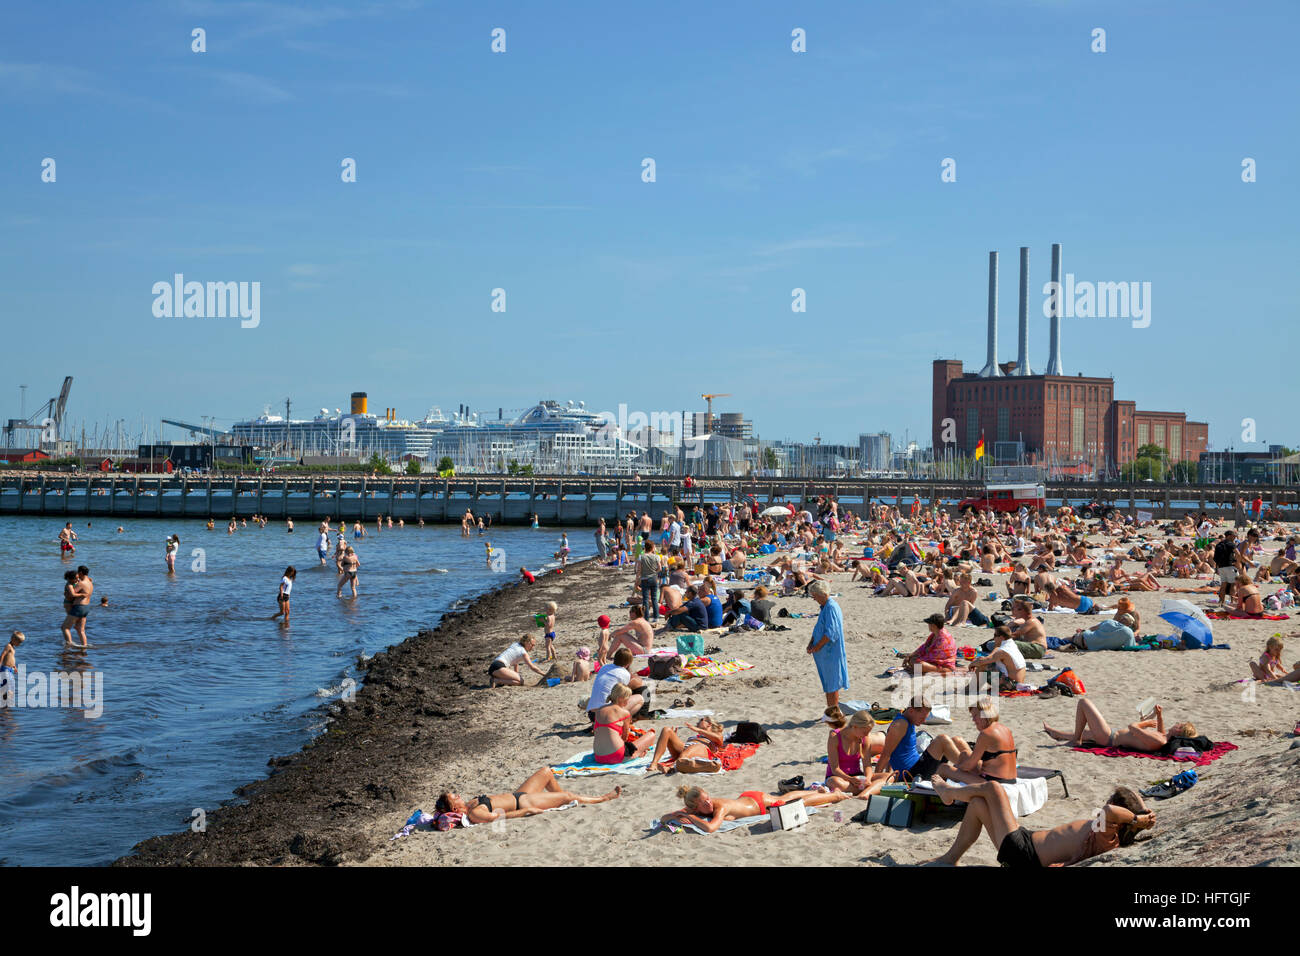 The Svanemølle Beach at the North Harbour of Copenhagen. 4,000 sqm. sand beach with a 130m long pier established - Stock Image